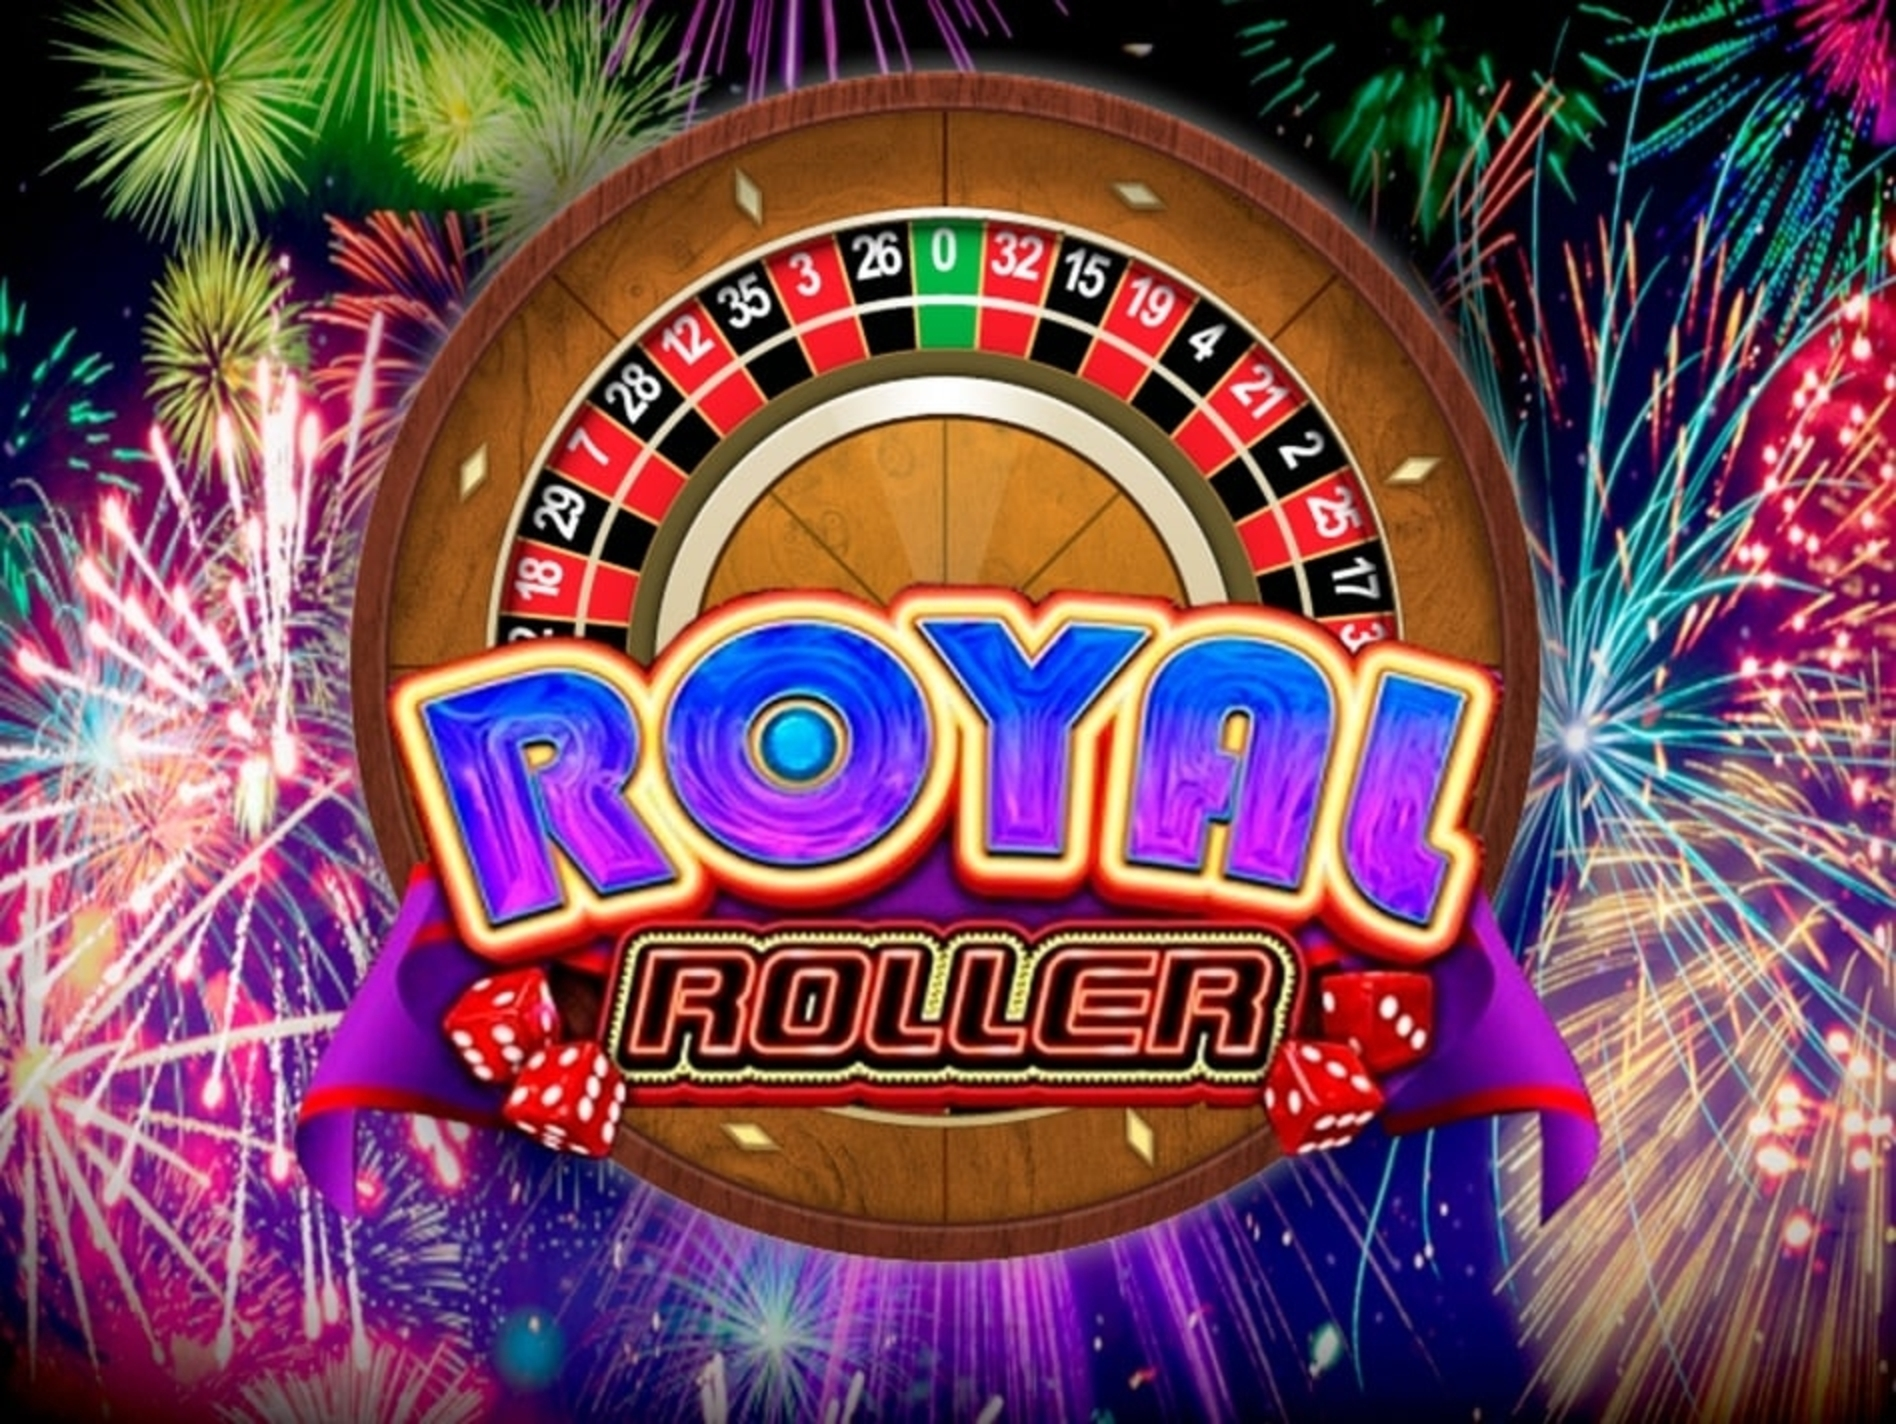 The Royal Roller Online Slot Demo Game by Microgaming